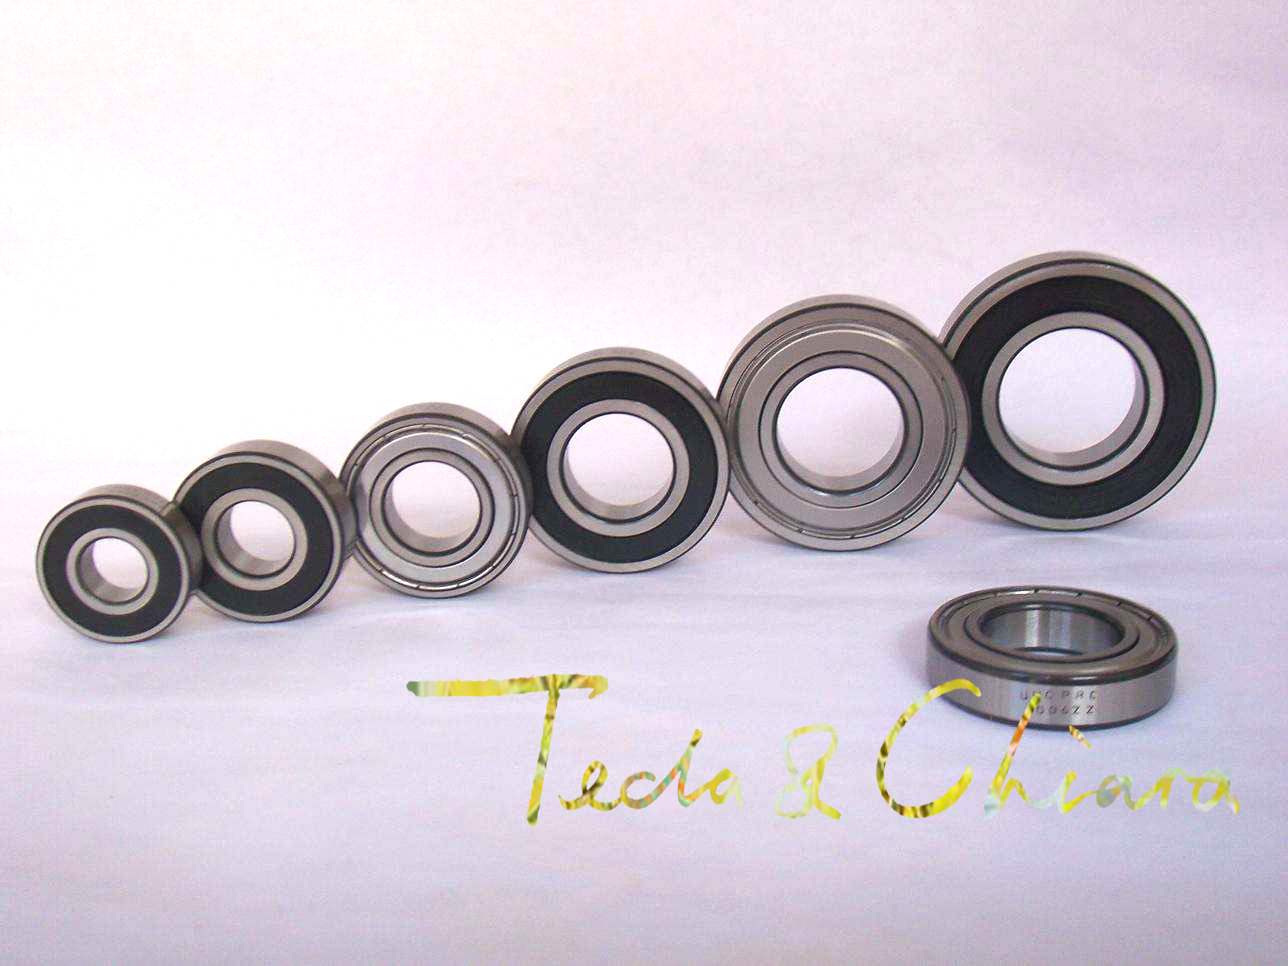 R3 R3zz R3rs R3-2z R3z R3-2rs Zz Rs Rz 2rz Deep Groove Ball Bearings 4.762 X 12.7 X 4.98mm 3/16 X 1/2 X 0.196 Power Transmission